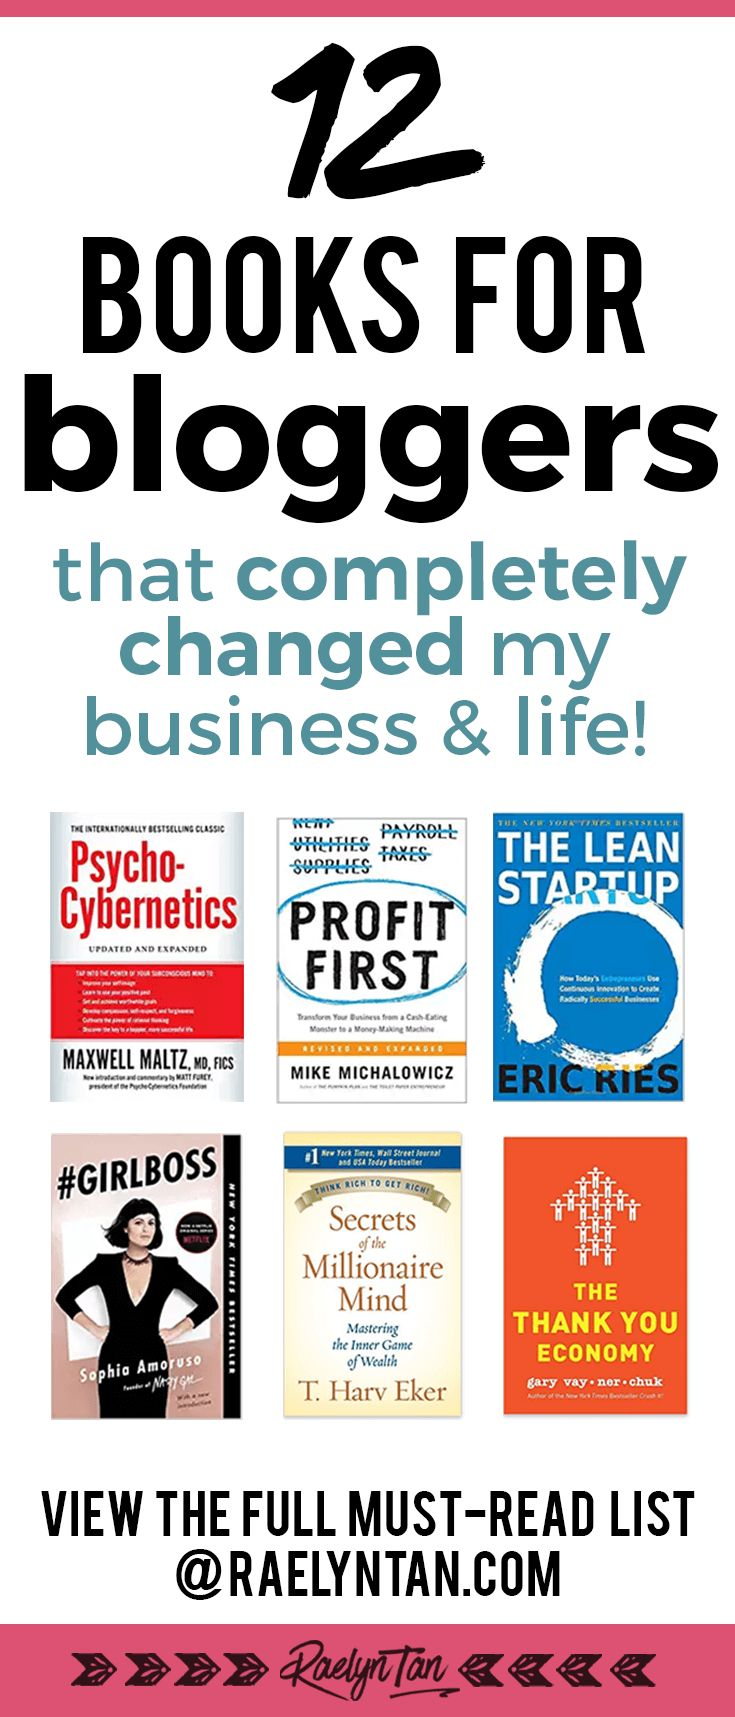 My 12 highly recommended books for bloggers on their blogging and business journey (+ my review)! Learn how to start a successful blog, get helpful business tips and ideas, and more. These books are the best and have literally changed my business and life, so if you have time to spare - please, do read them.